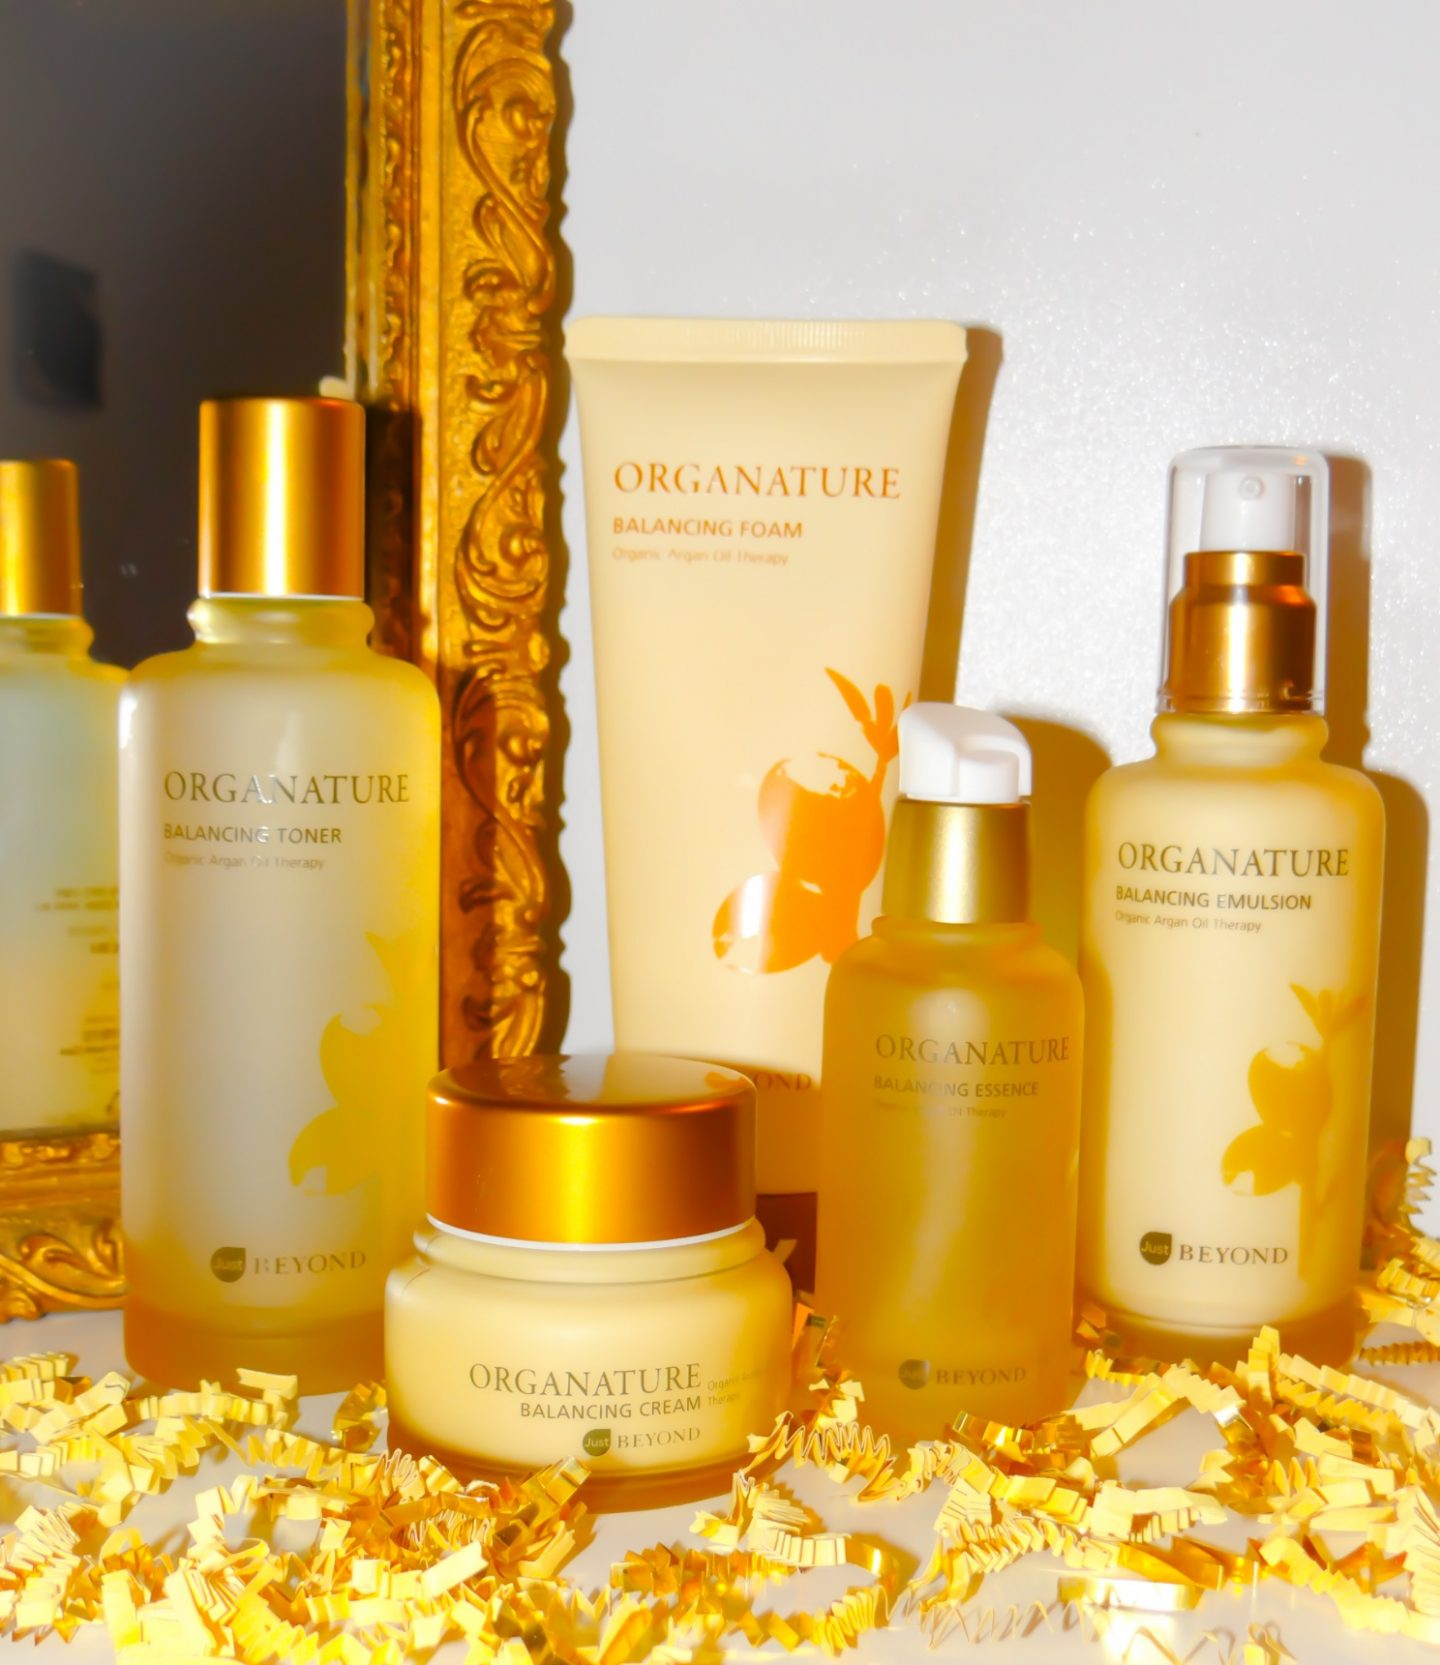 BEYOND – An Eco-Beauty line by Fruits and Passion